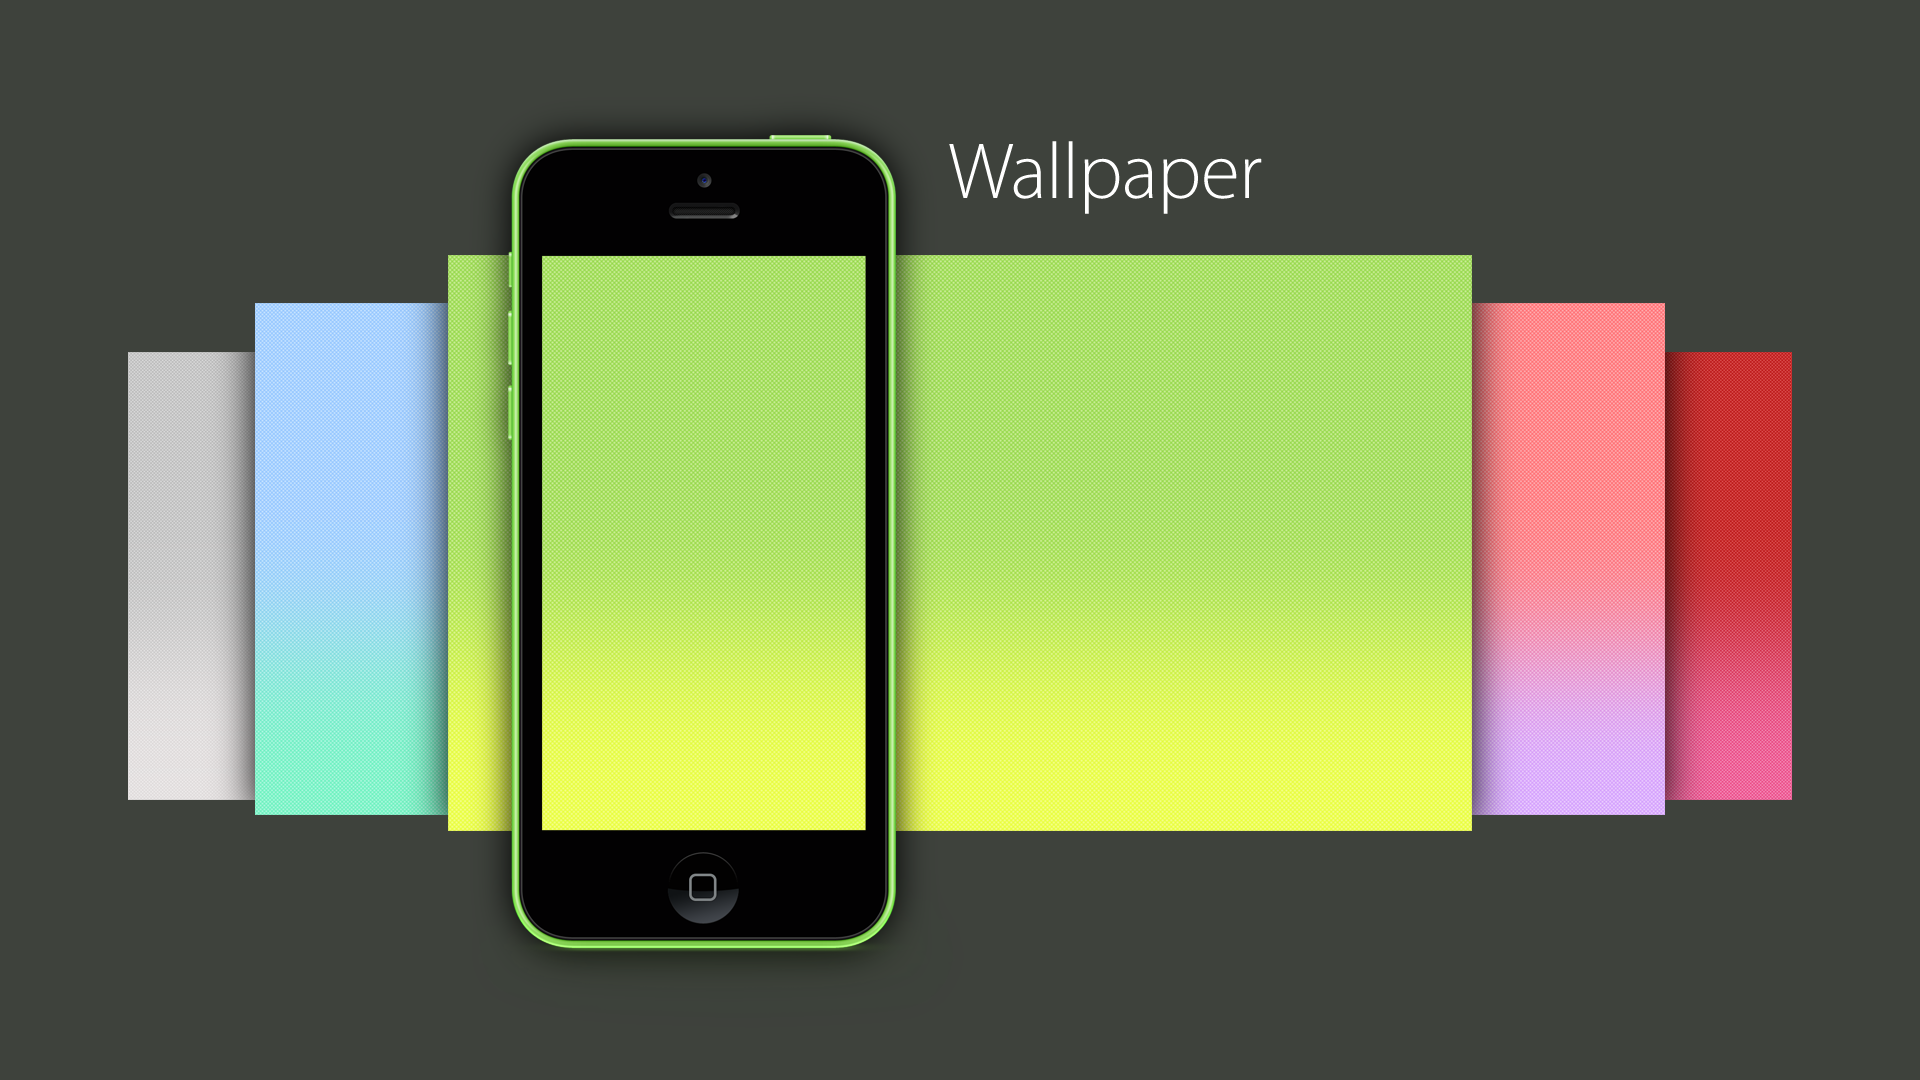 Good Wallpapers For Iphone 5c: IPhone 5C Wallpaper By TinyLab On DeviantArt